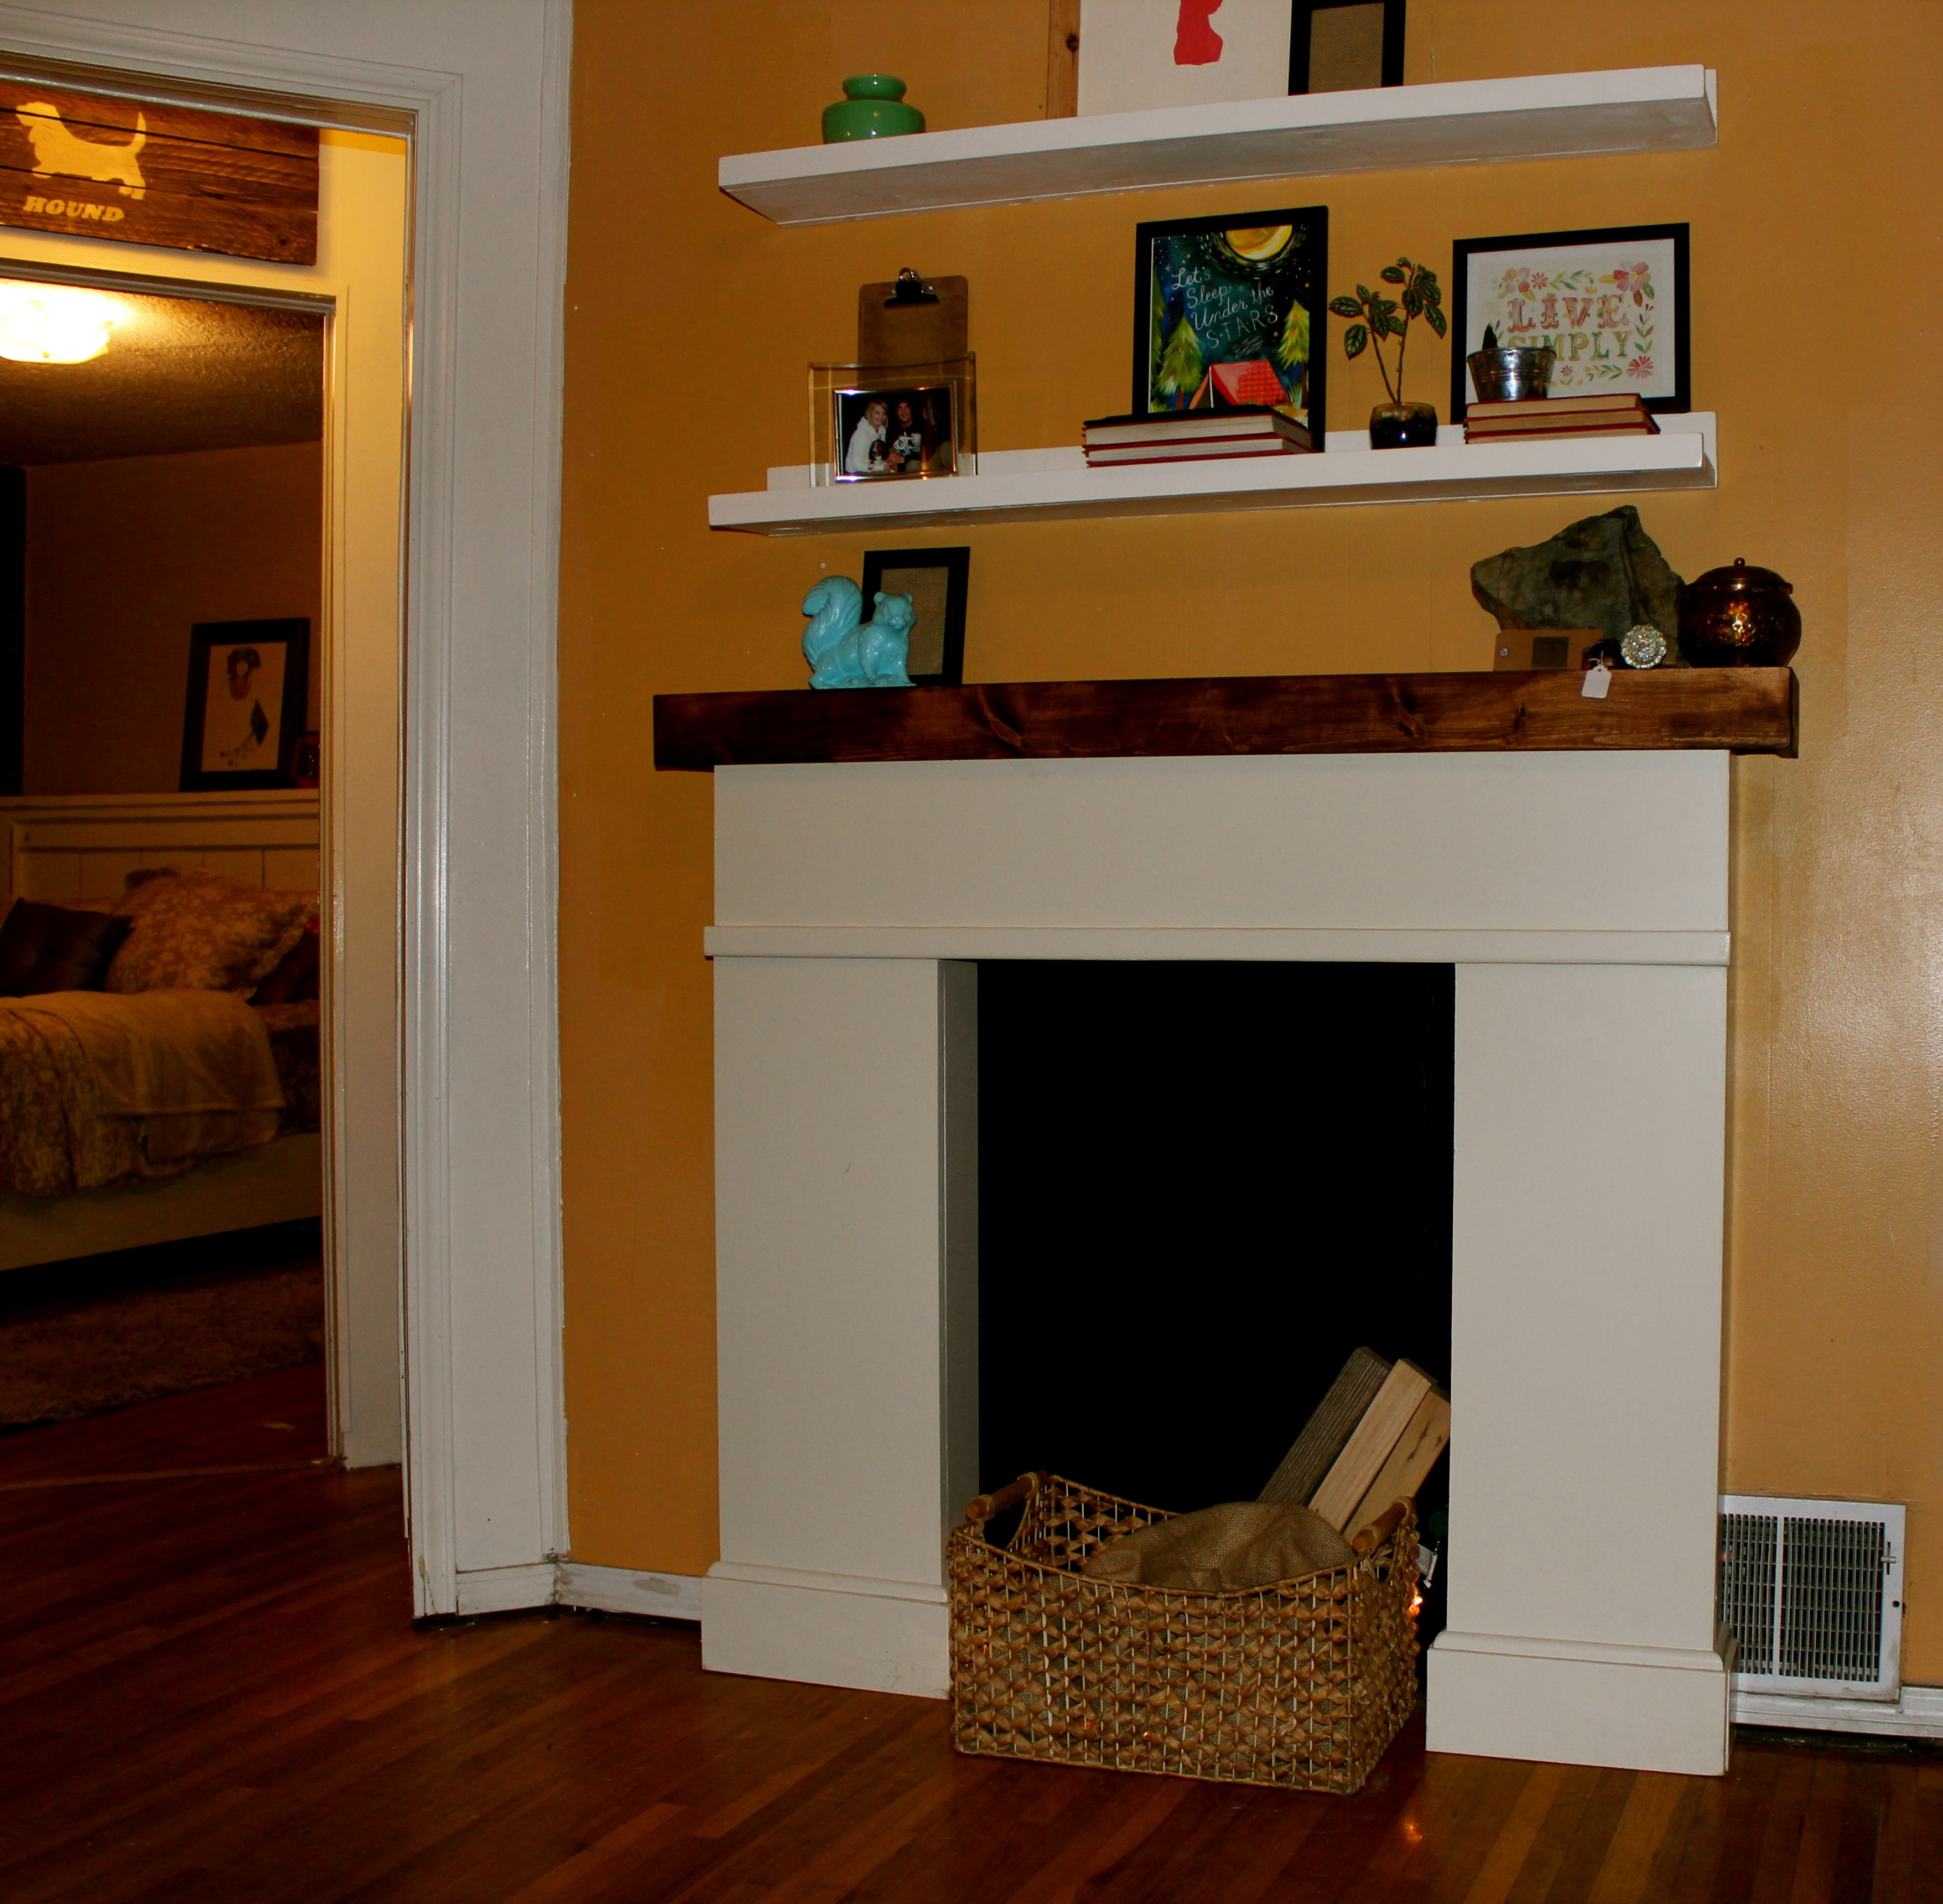 Lowes Fireplace Mantel | Fireplace Mantel for Sale | Faux Fireplace Mantel Kits